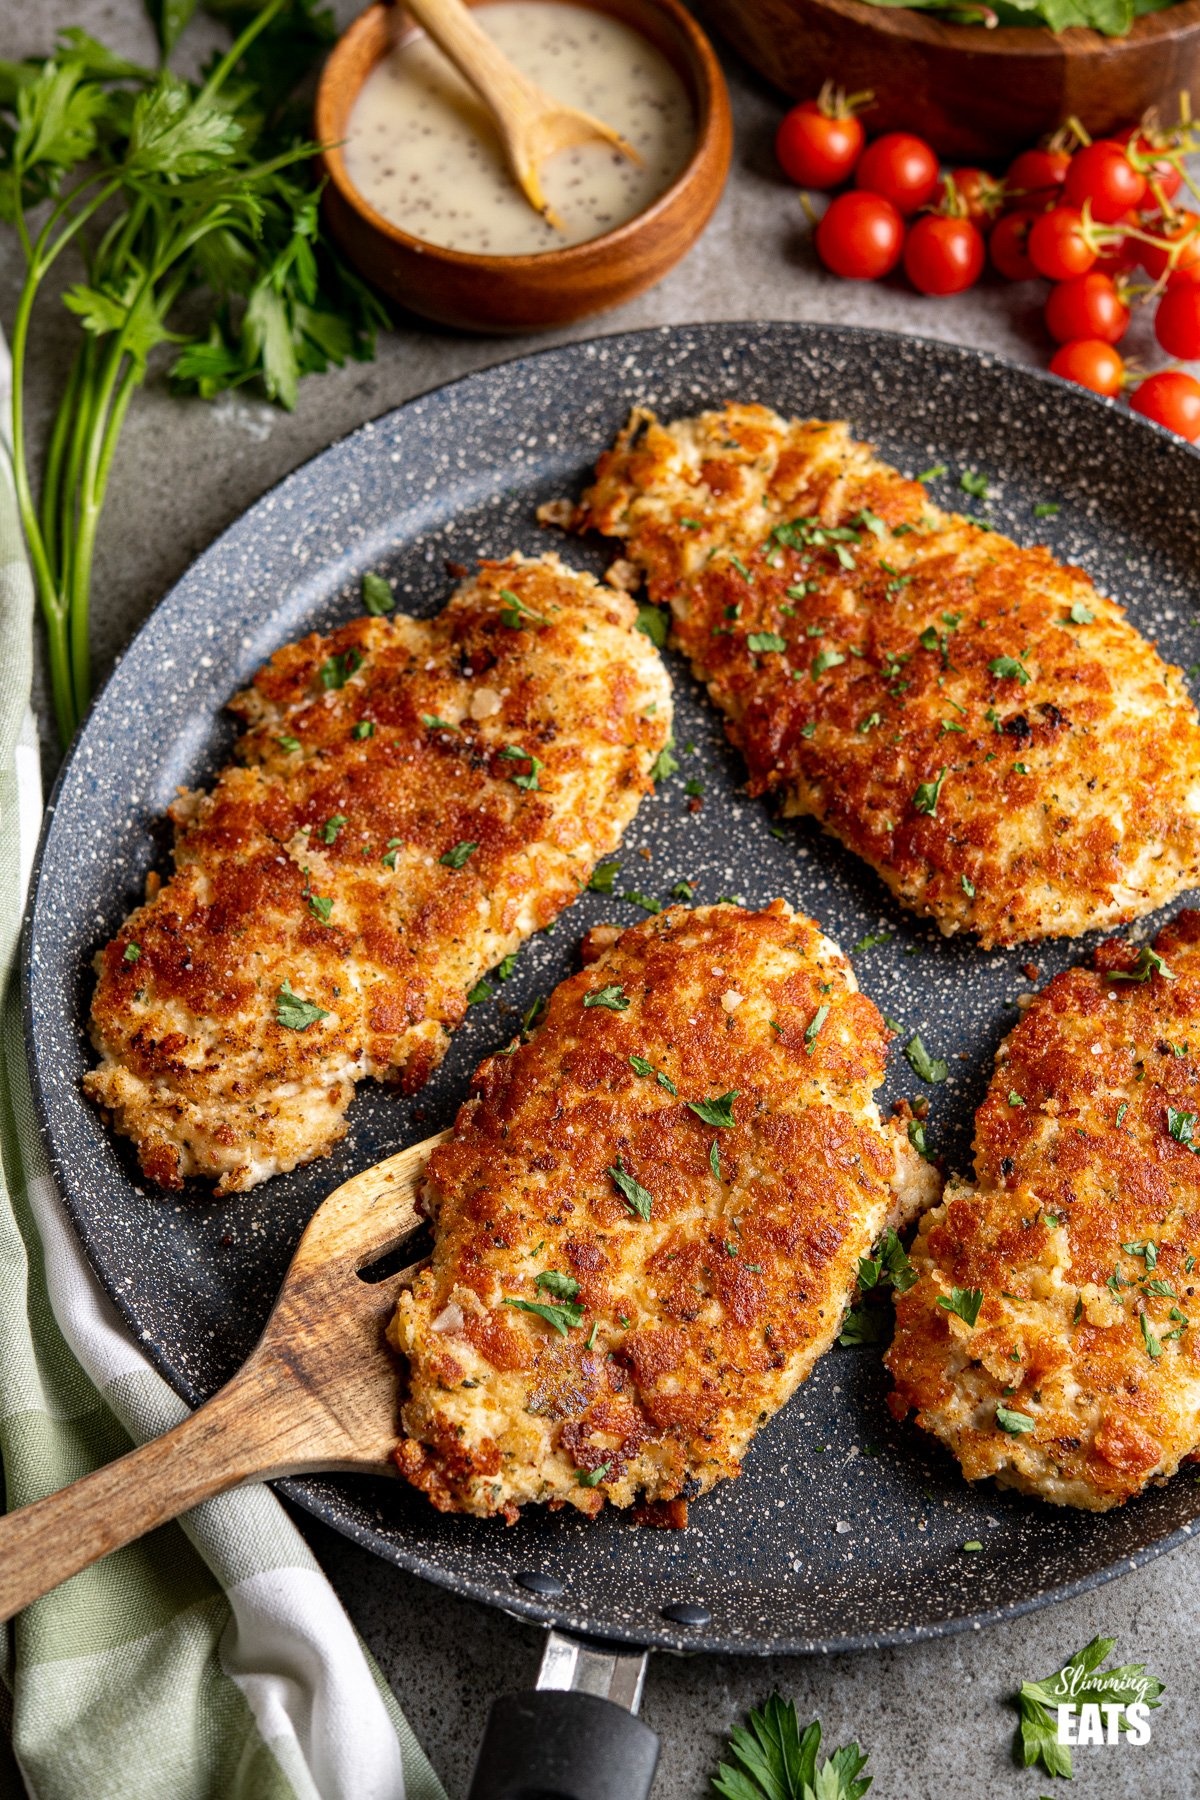 Four Golden Parmesan Crusted Chicken on frying pan with wooden spatula, tomatoes, dressing and salad in background